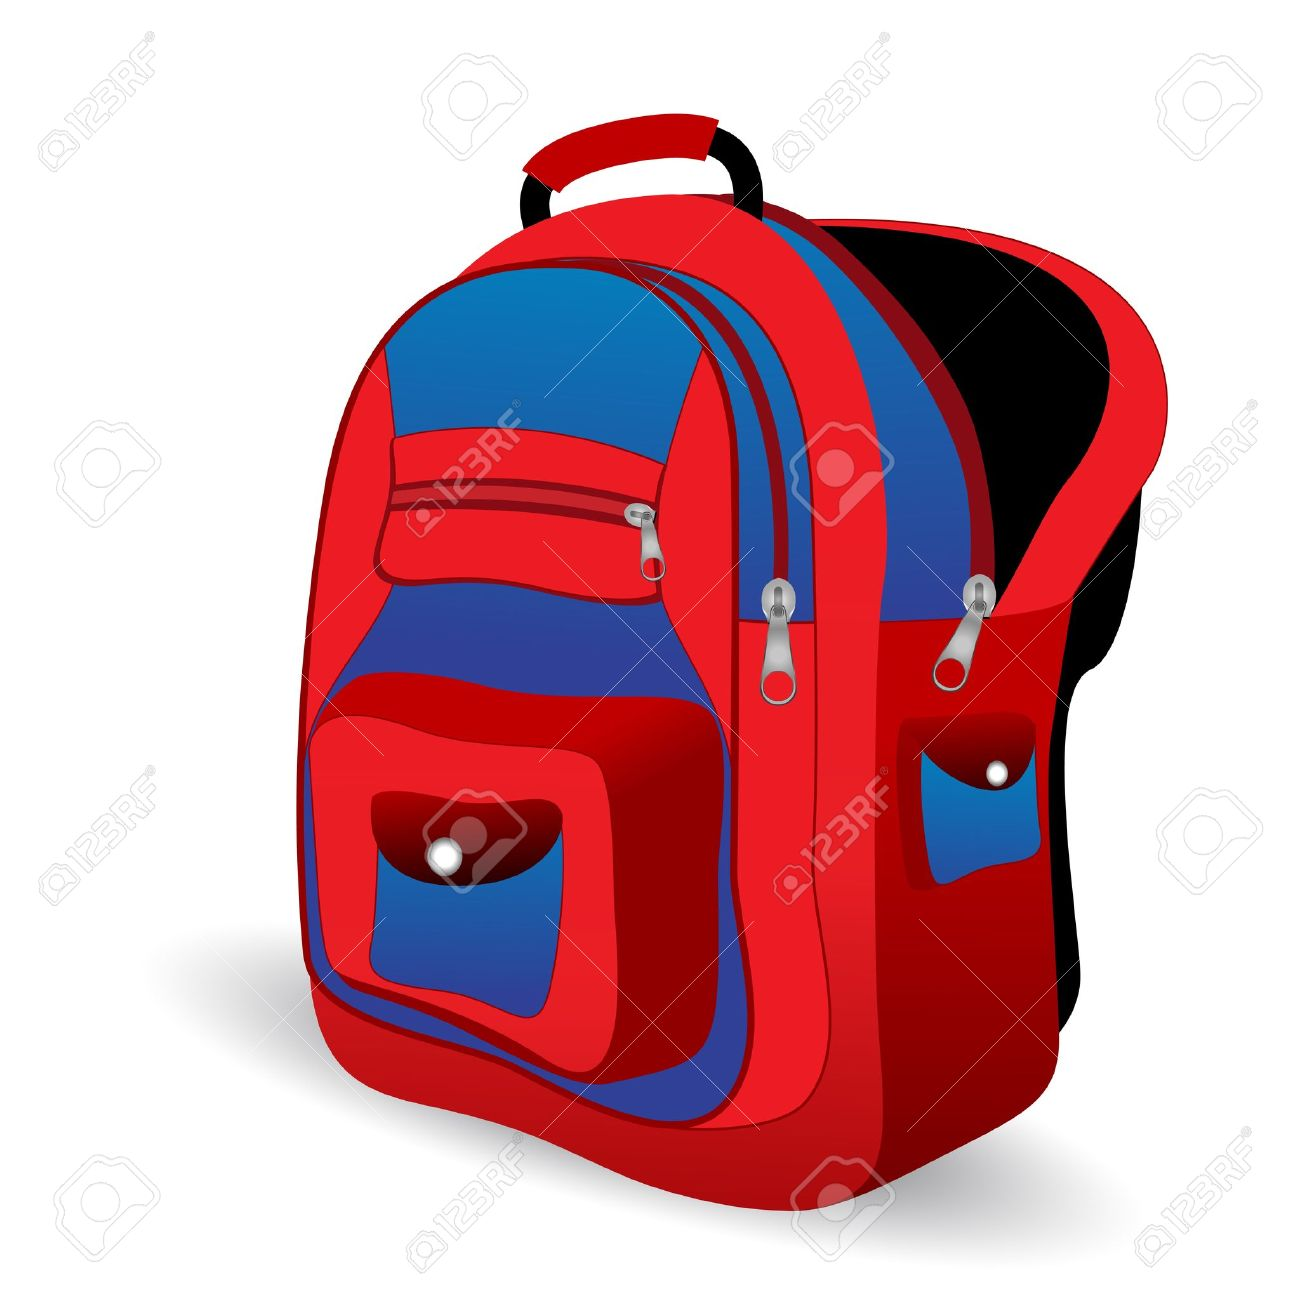 1300x1300 Illustration Of School Bag On White Background Royalty Free